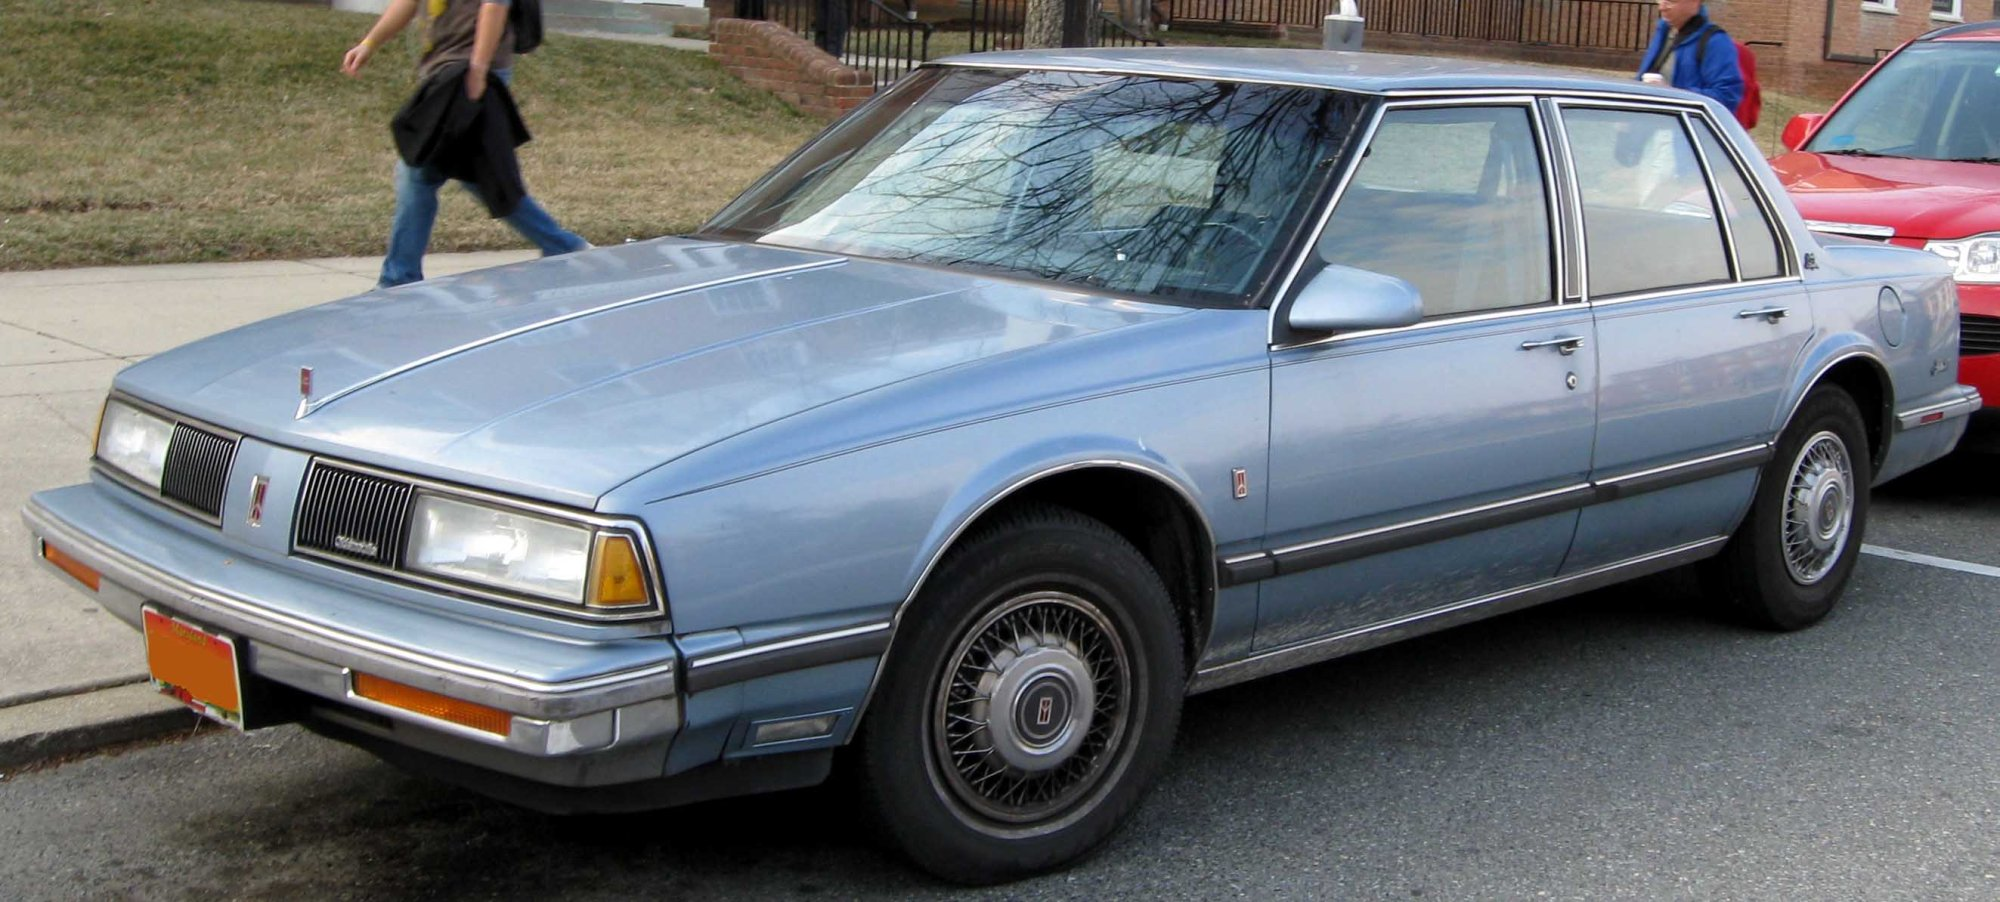 hight resolution of 1986 89 delta 88 sedan this is a 1988 or 1989 model because the